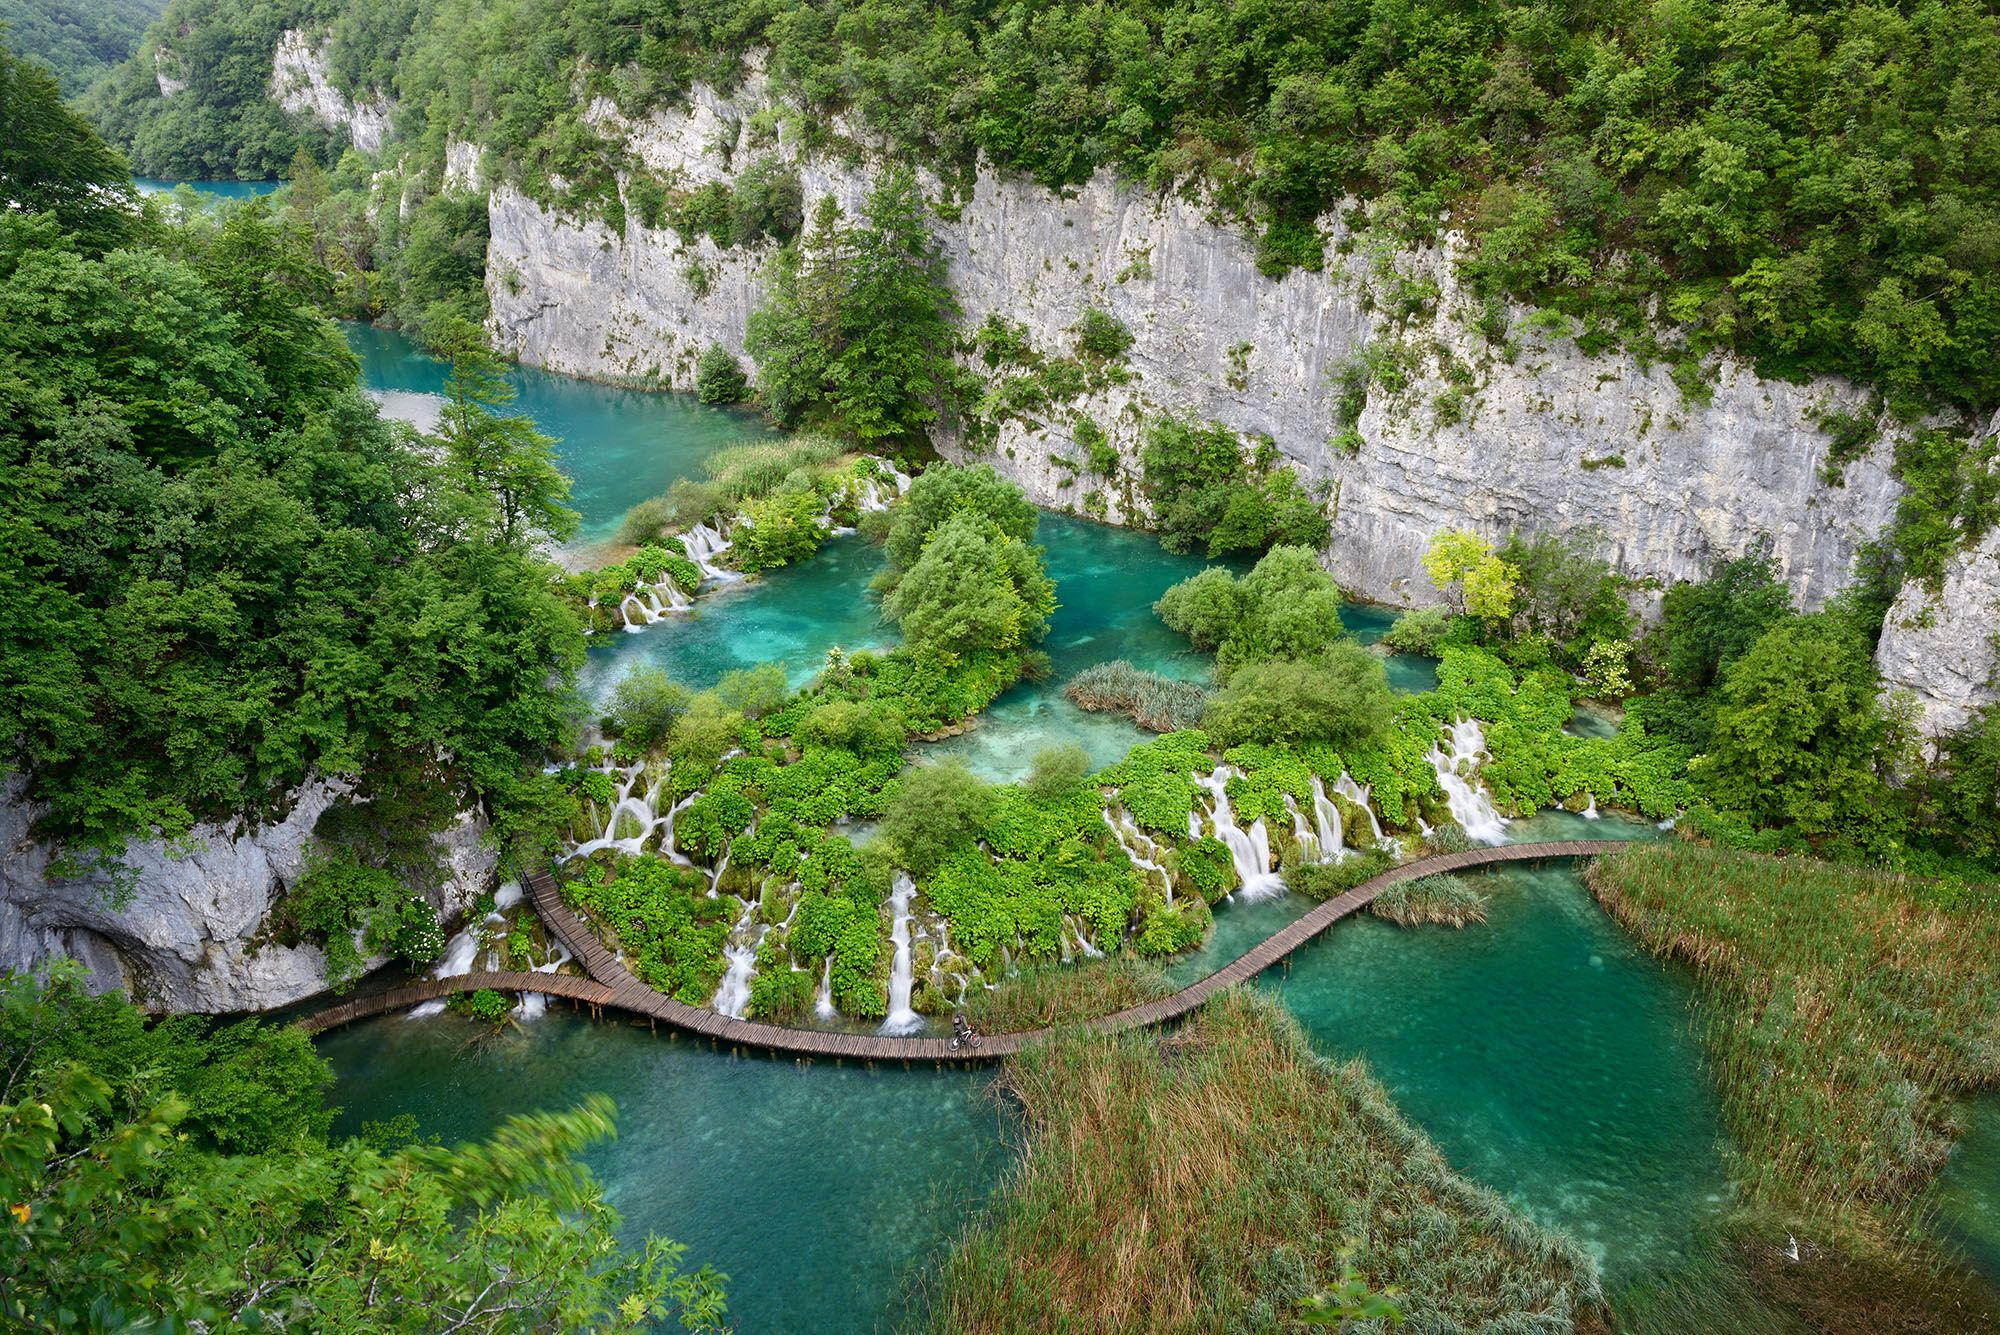 Meandering a maze of turquoise in Plitvice National Park